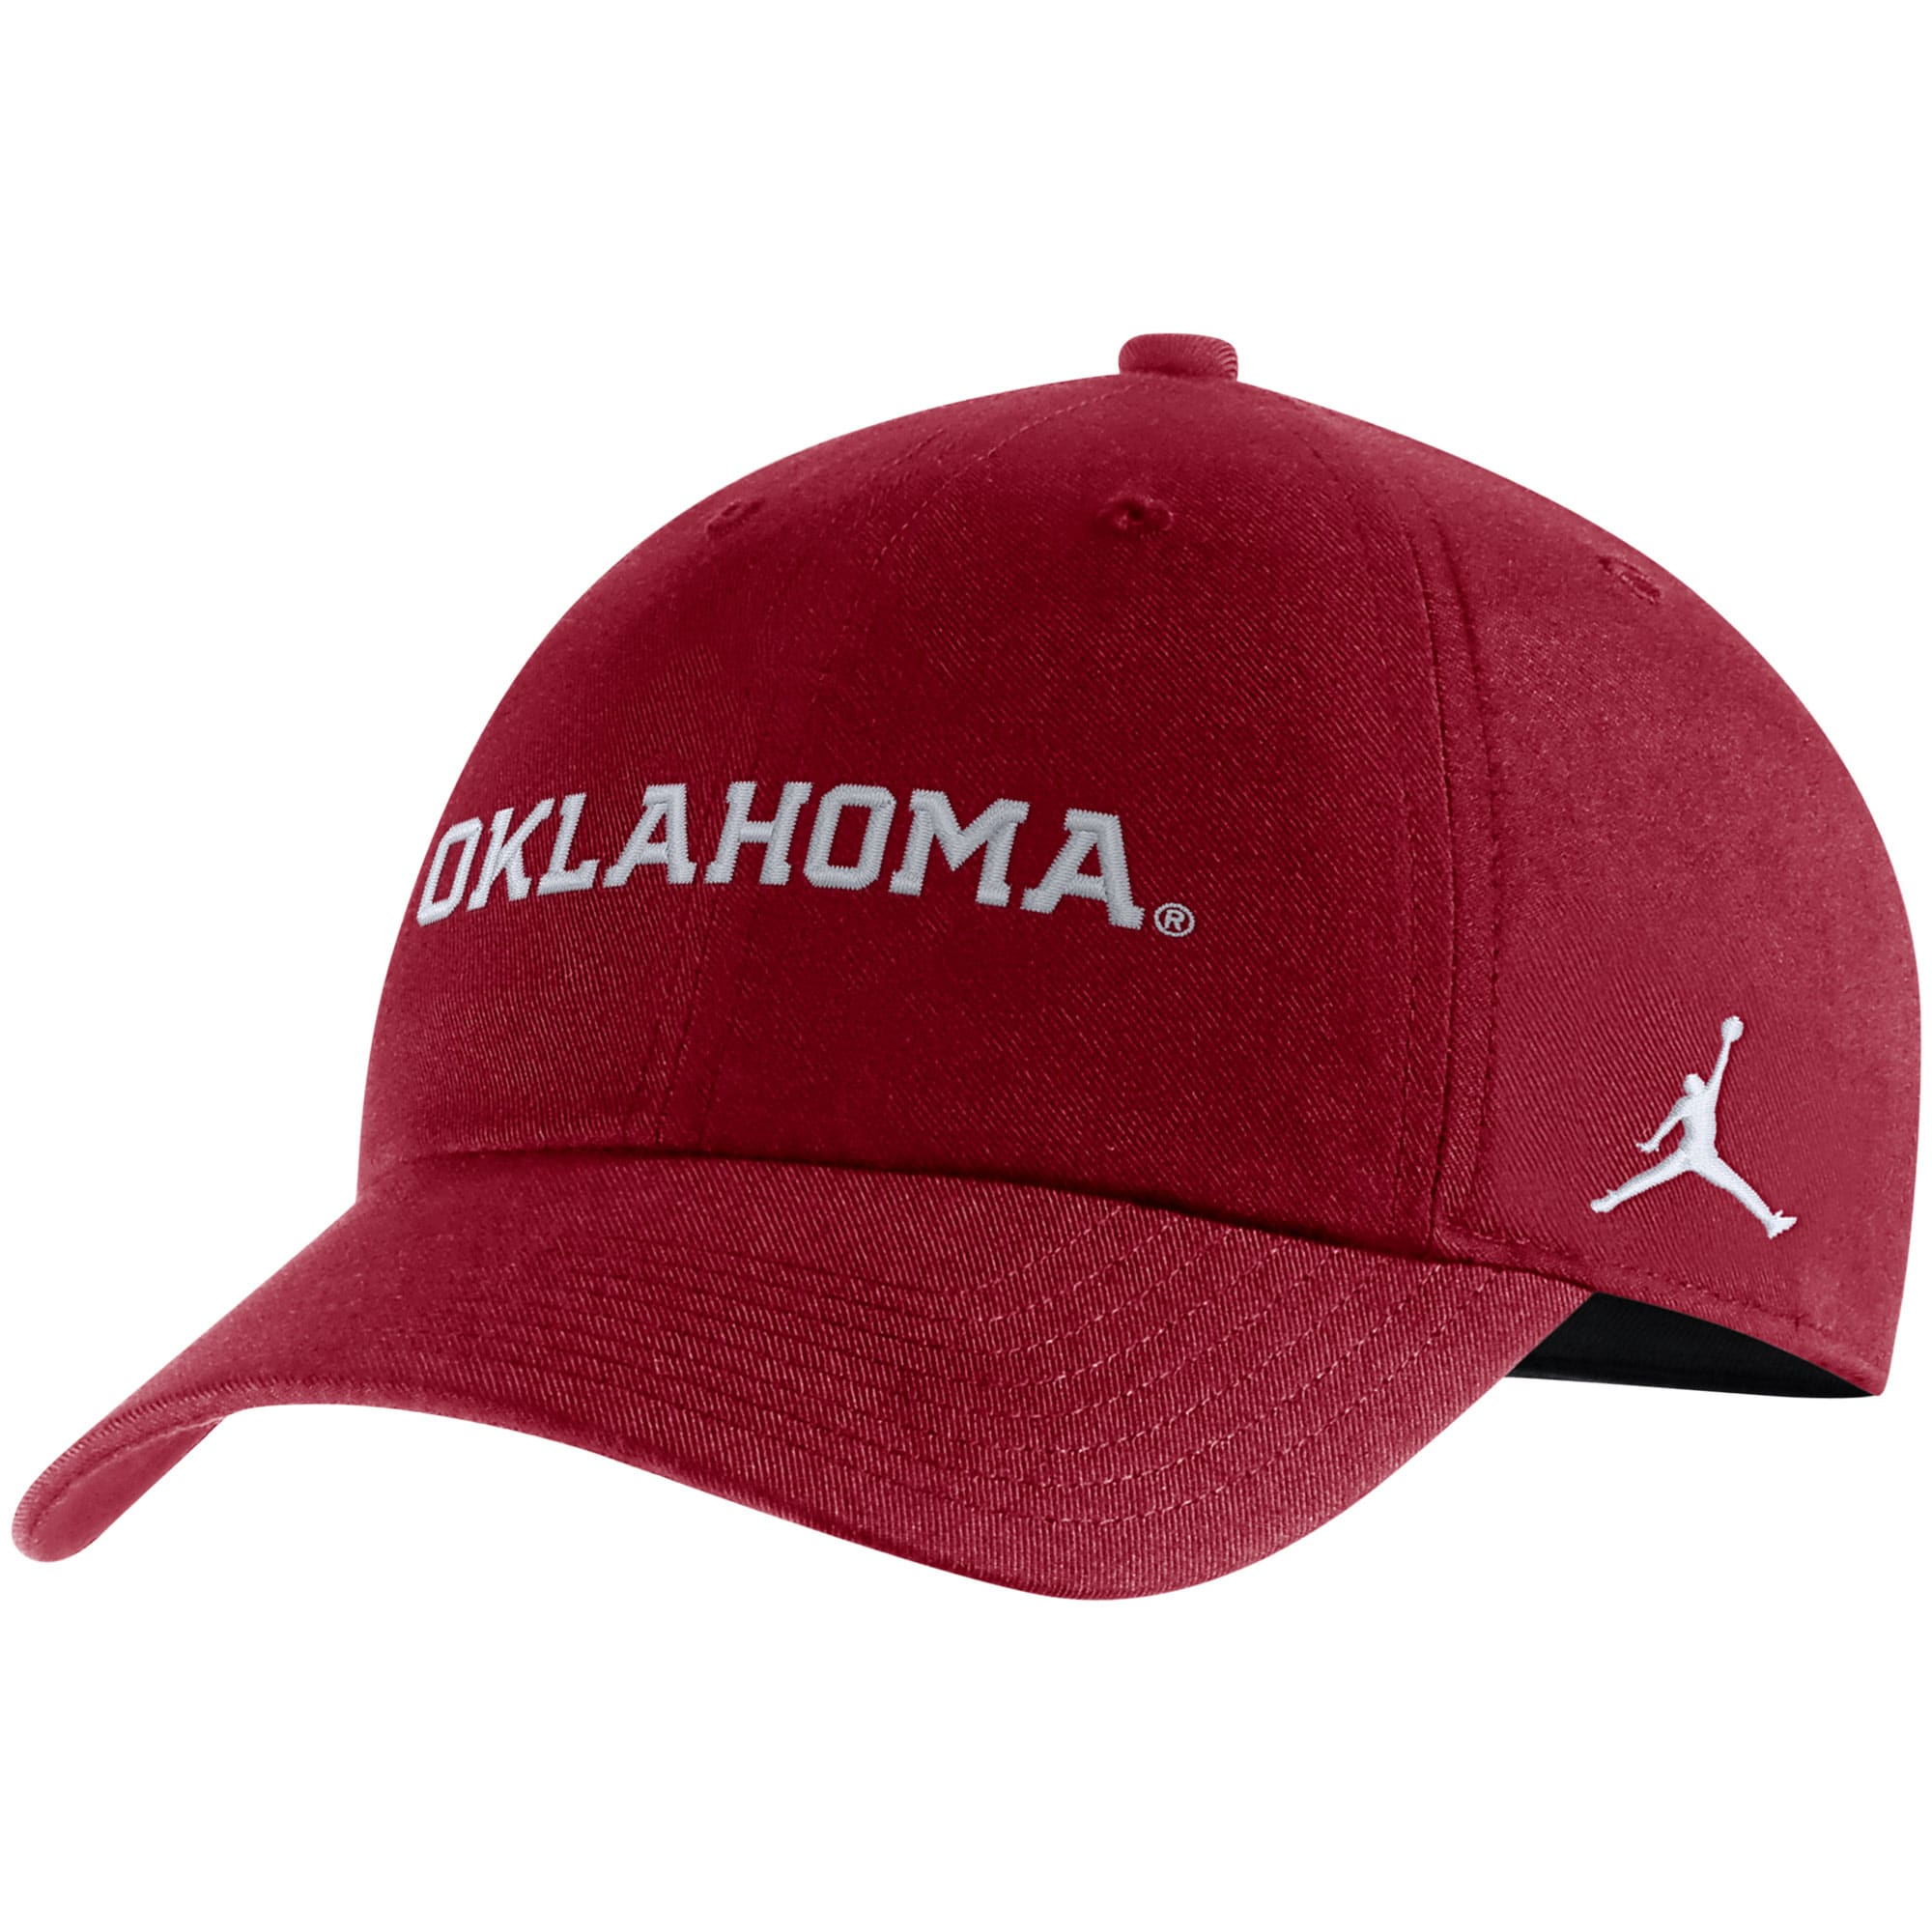 Oklahoma Sooners Jordan Brand Heritage 86 Team Wordmark Adjustable Hat - Crimson